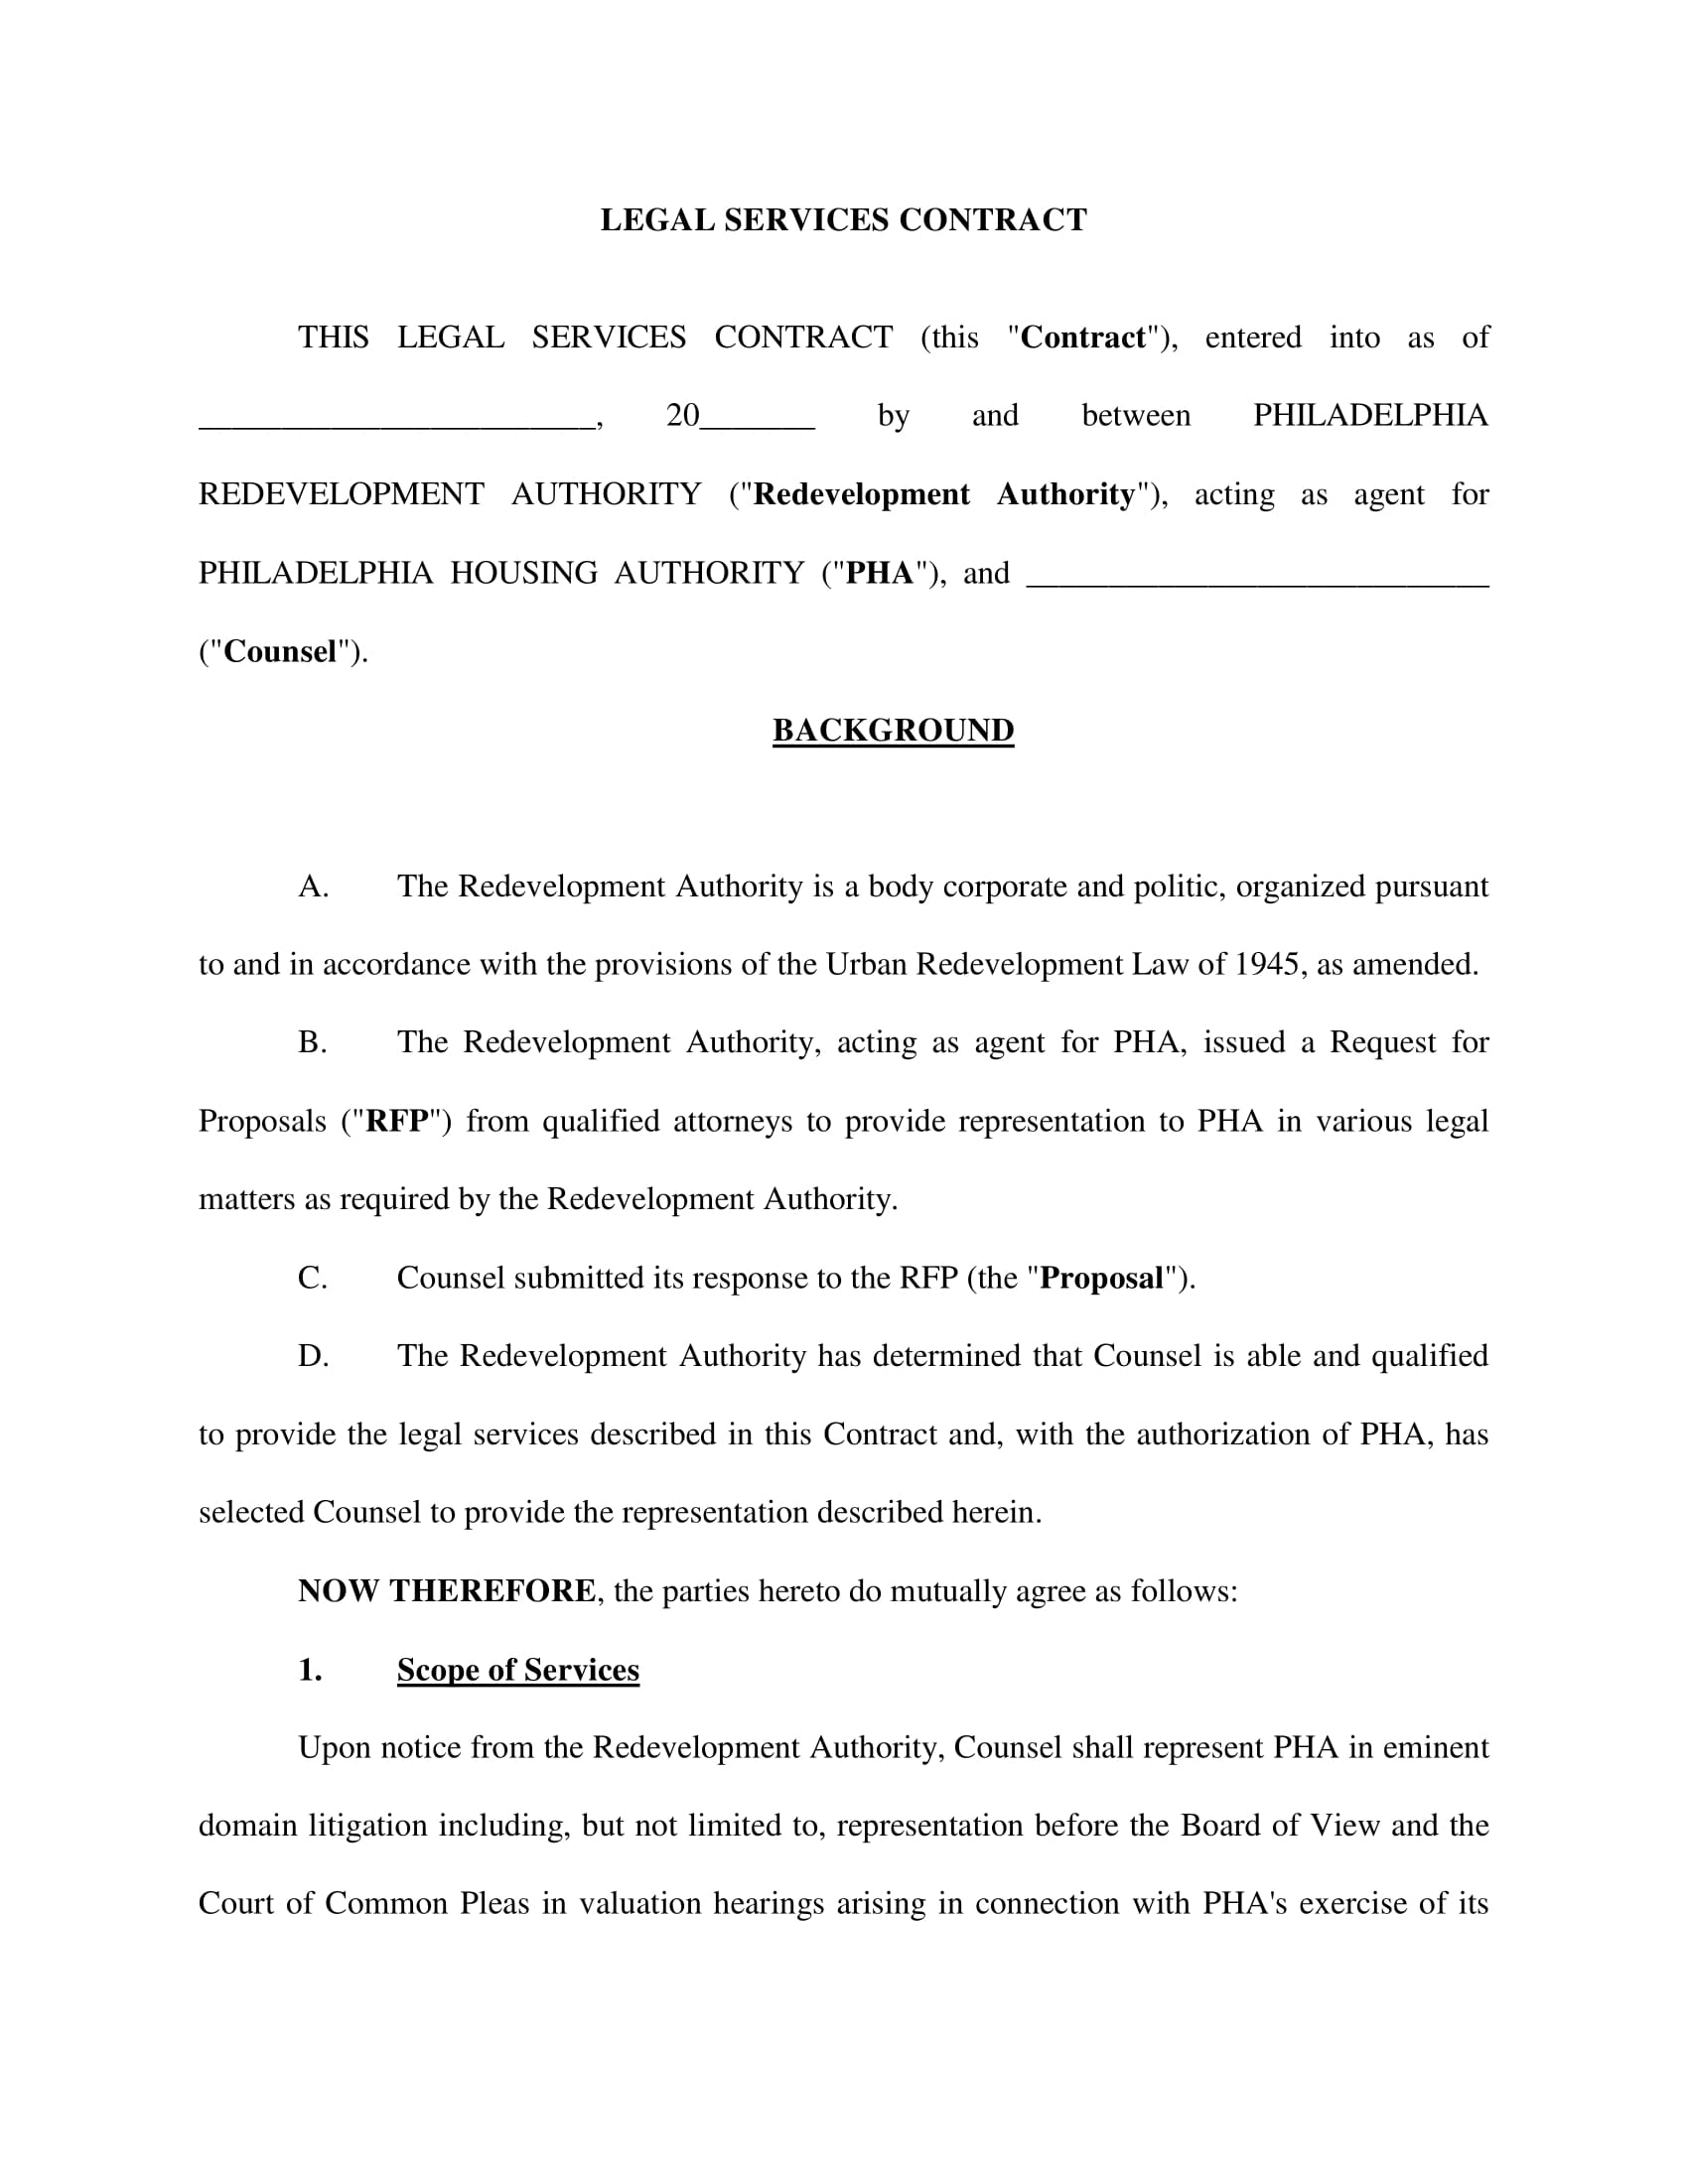 simple legal services contract form 1